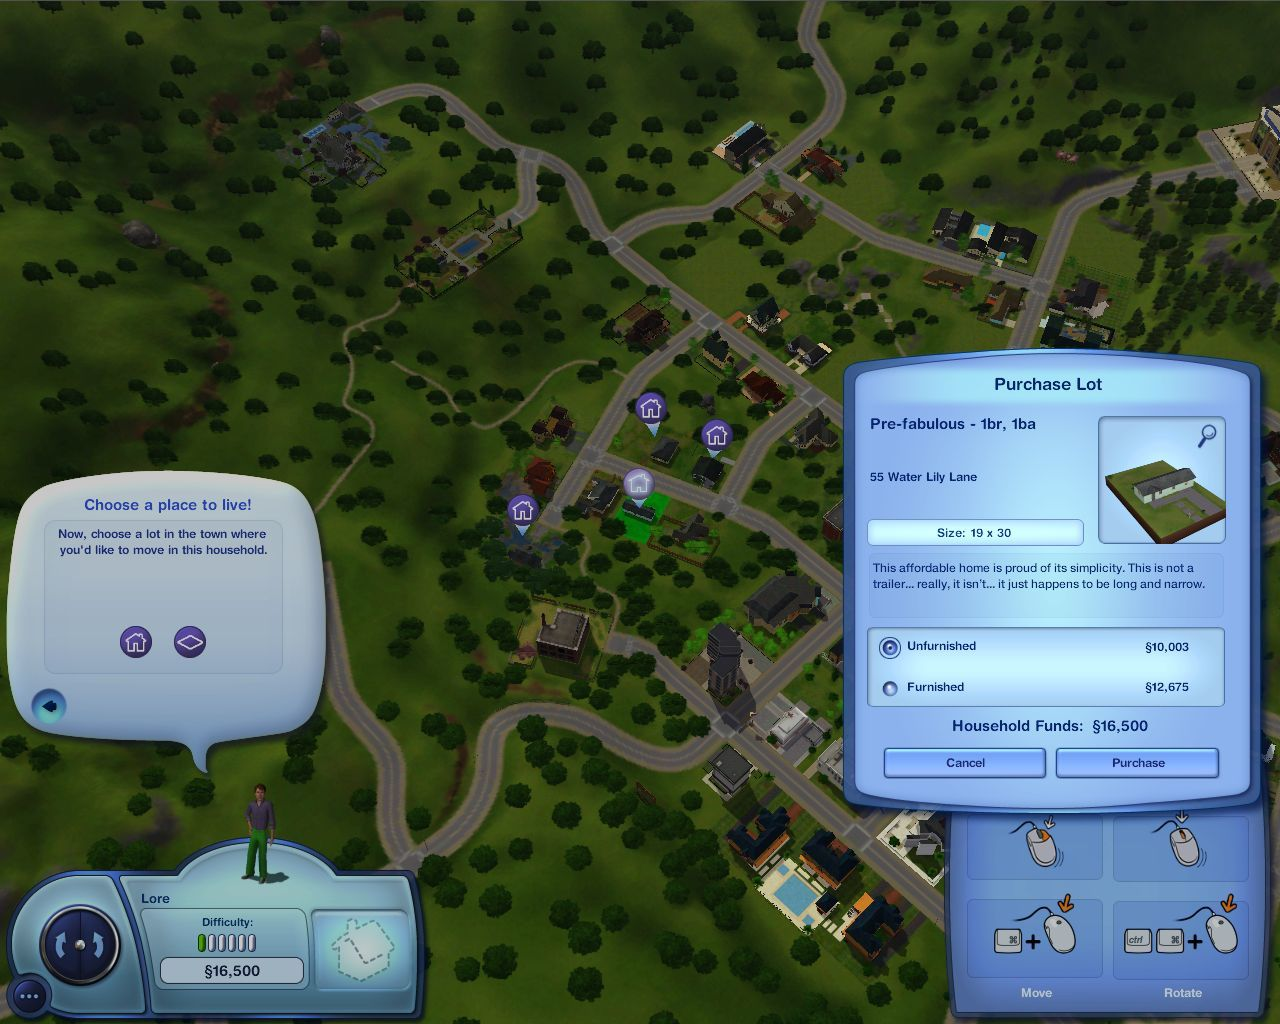 The Sims 3 Macintosh Buying a house: We can't be too picky - our budget is limited